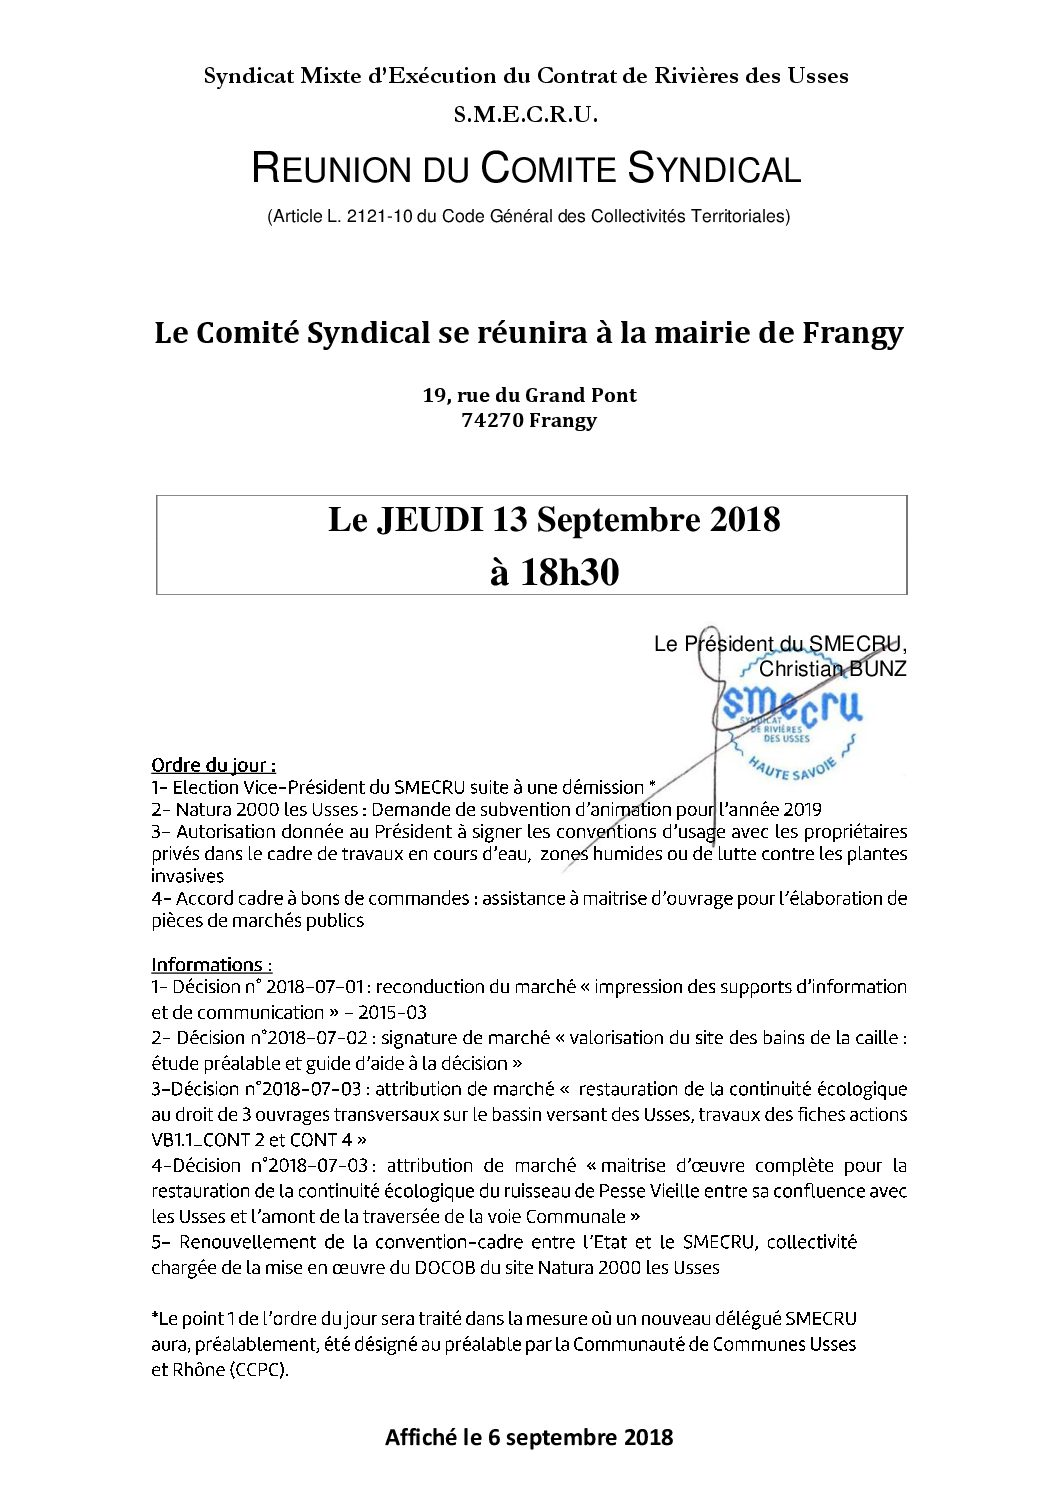 1_Affichage officiel 13-09-2018